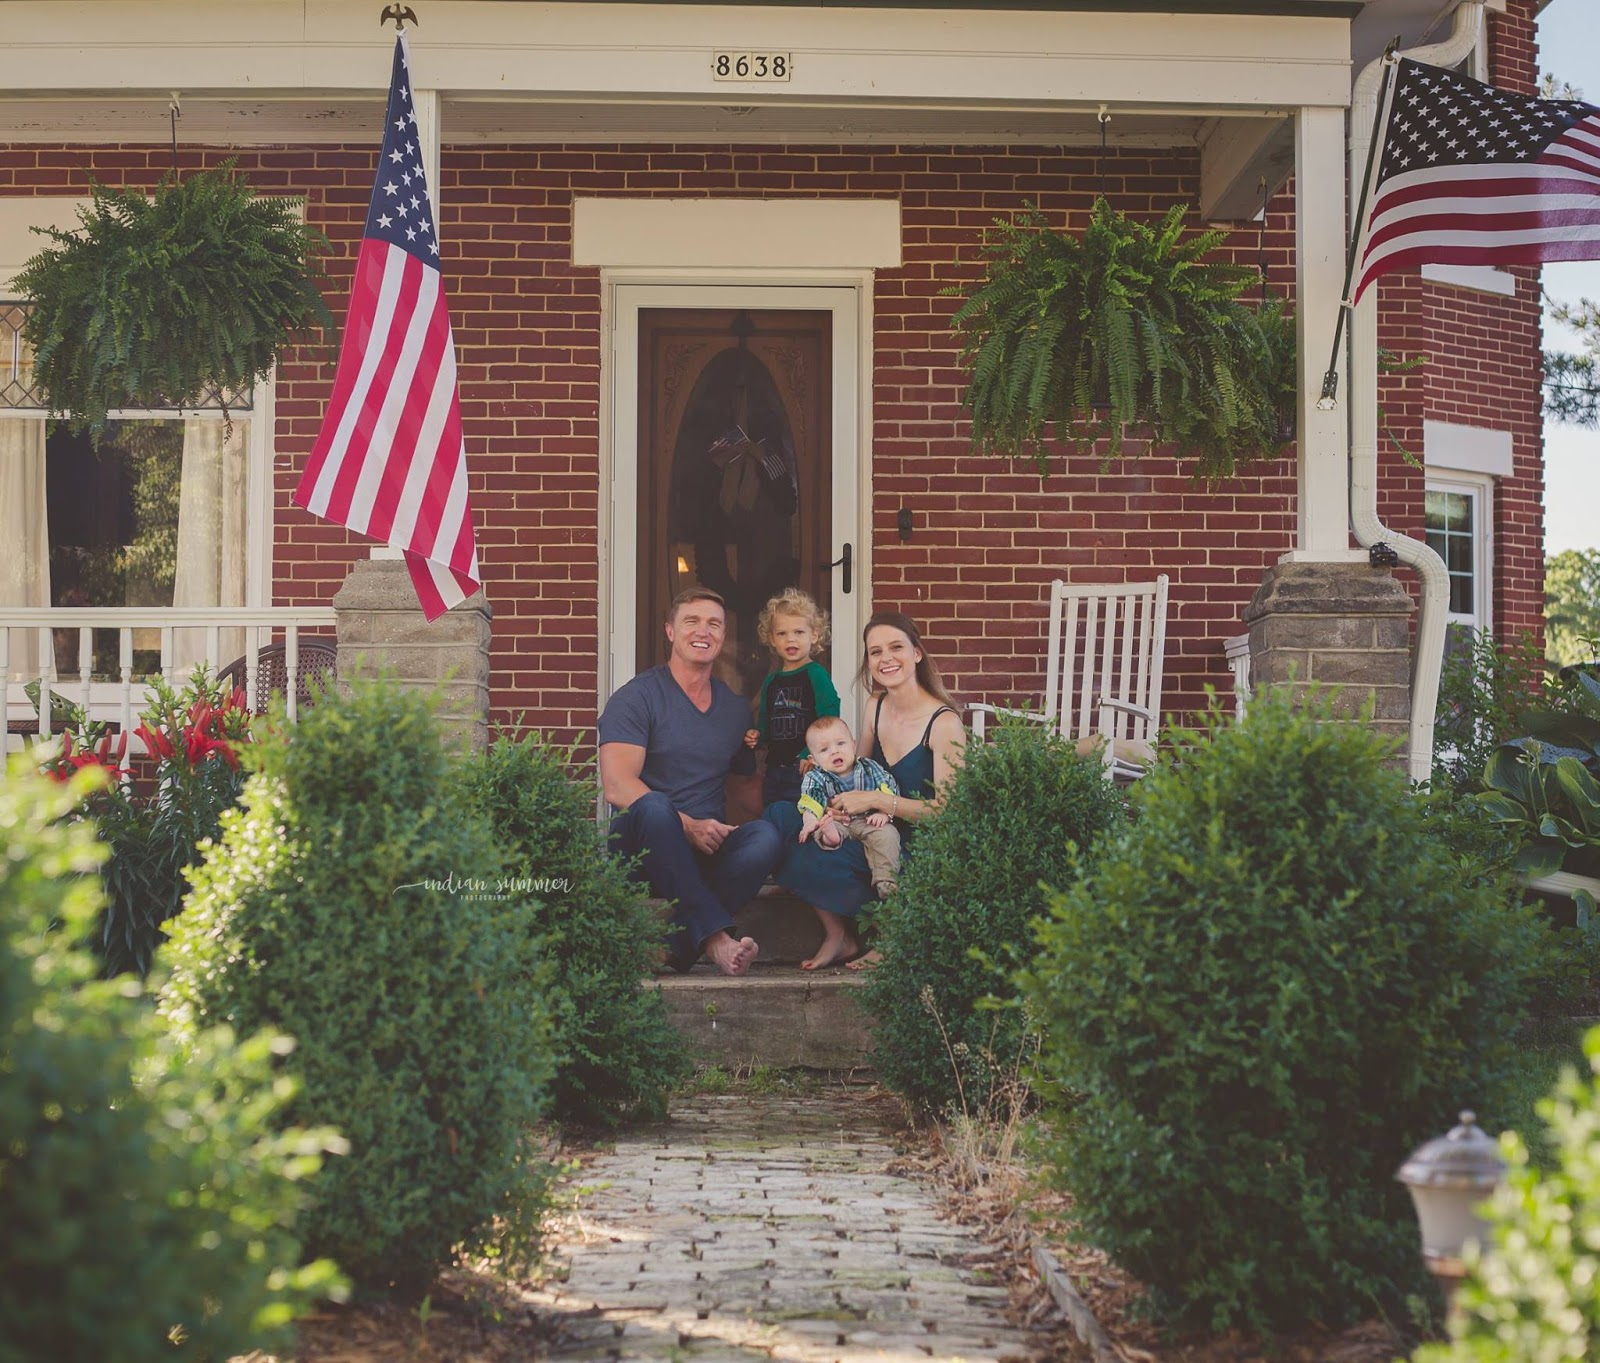 The Author's Family on their front steps of their old brick home